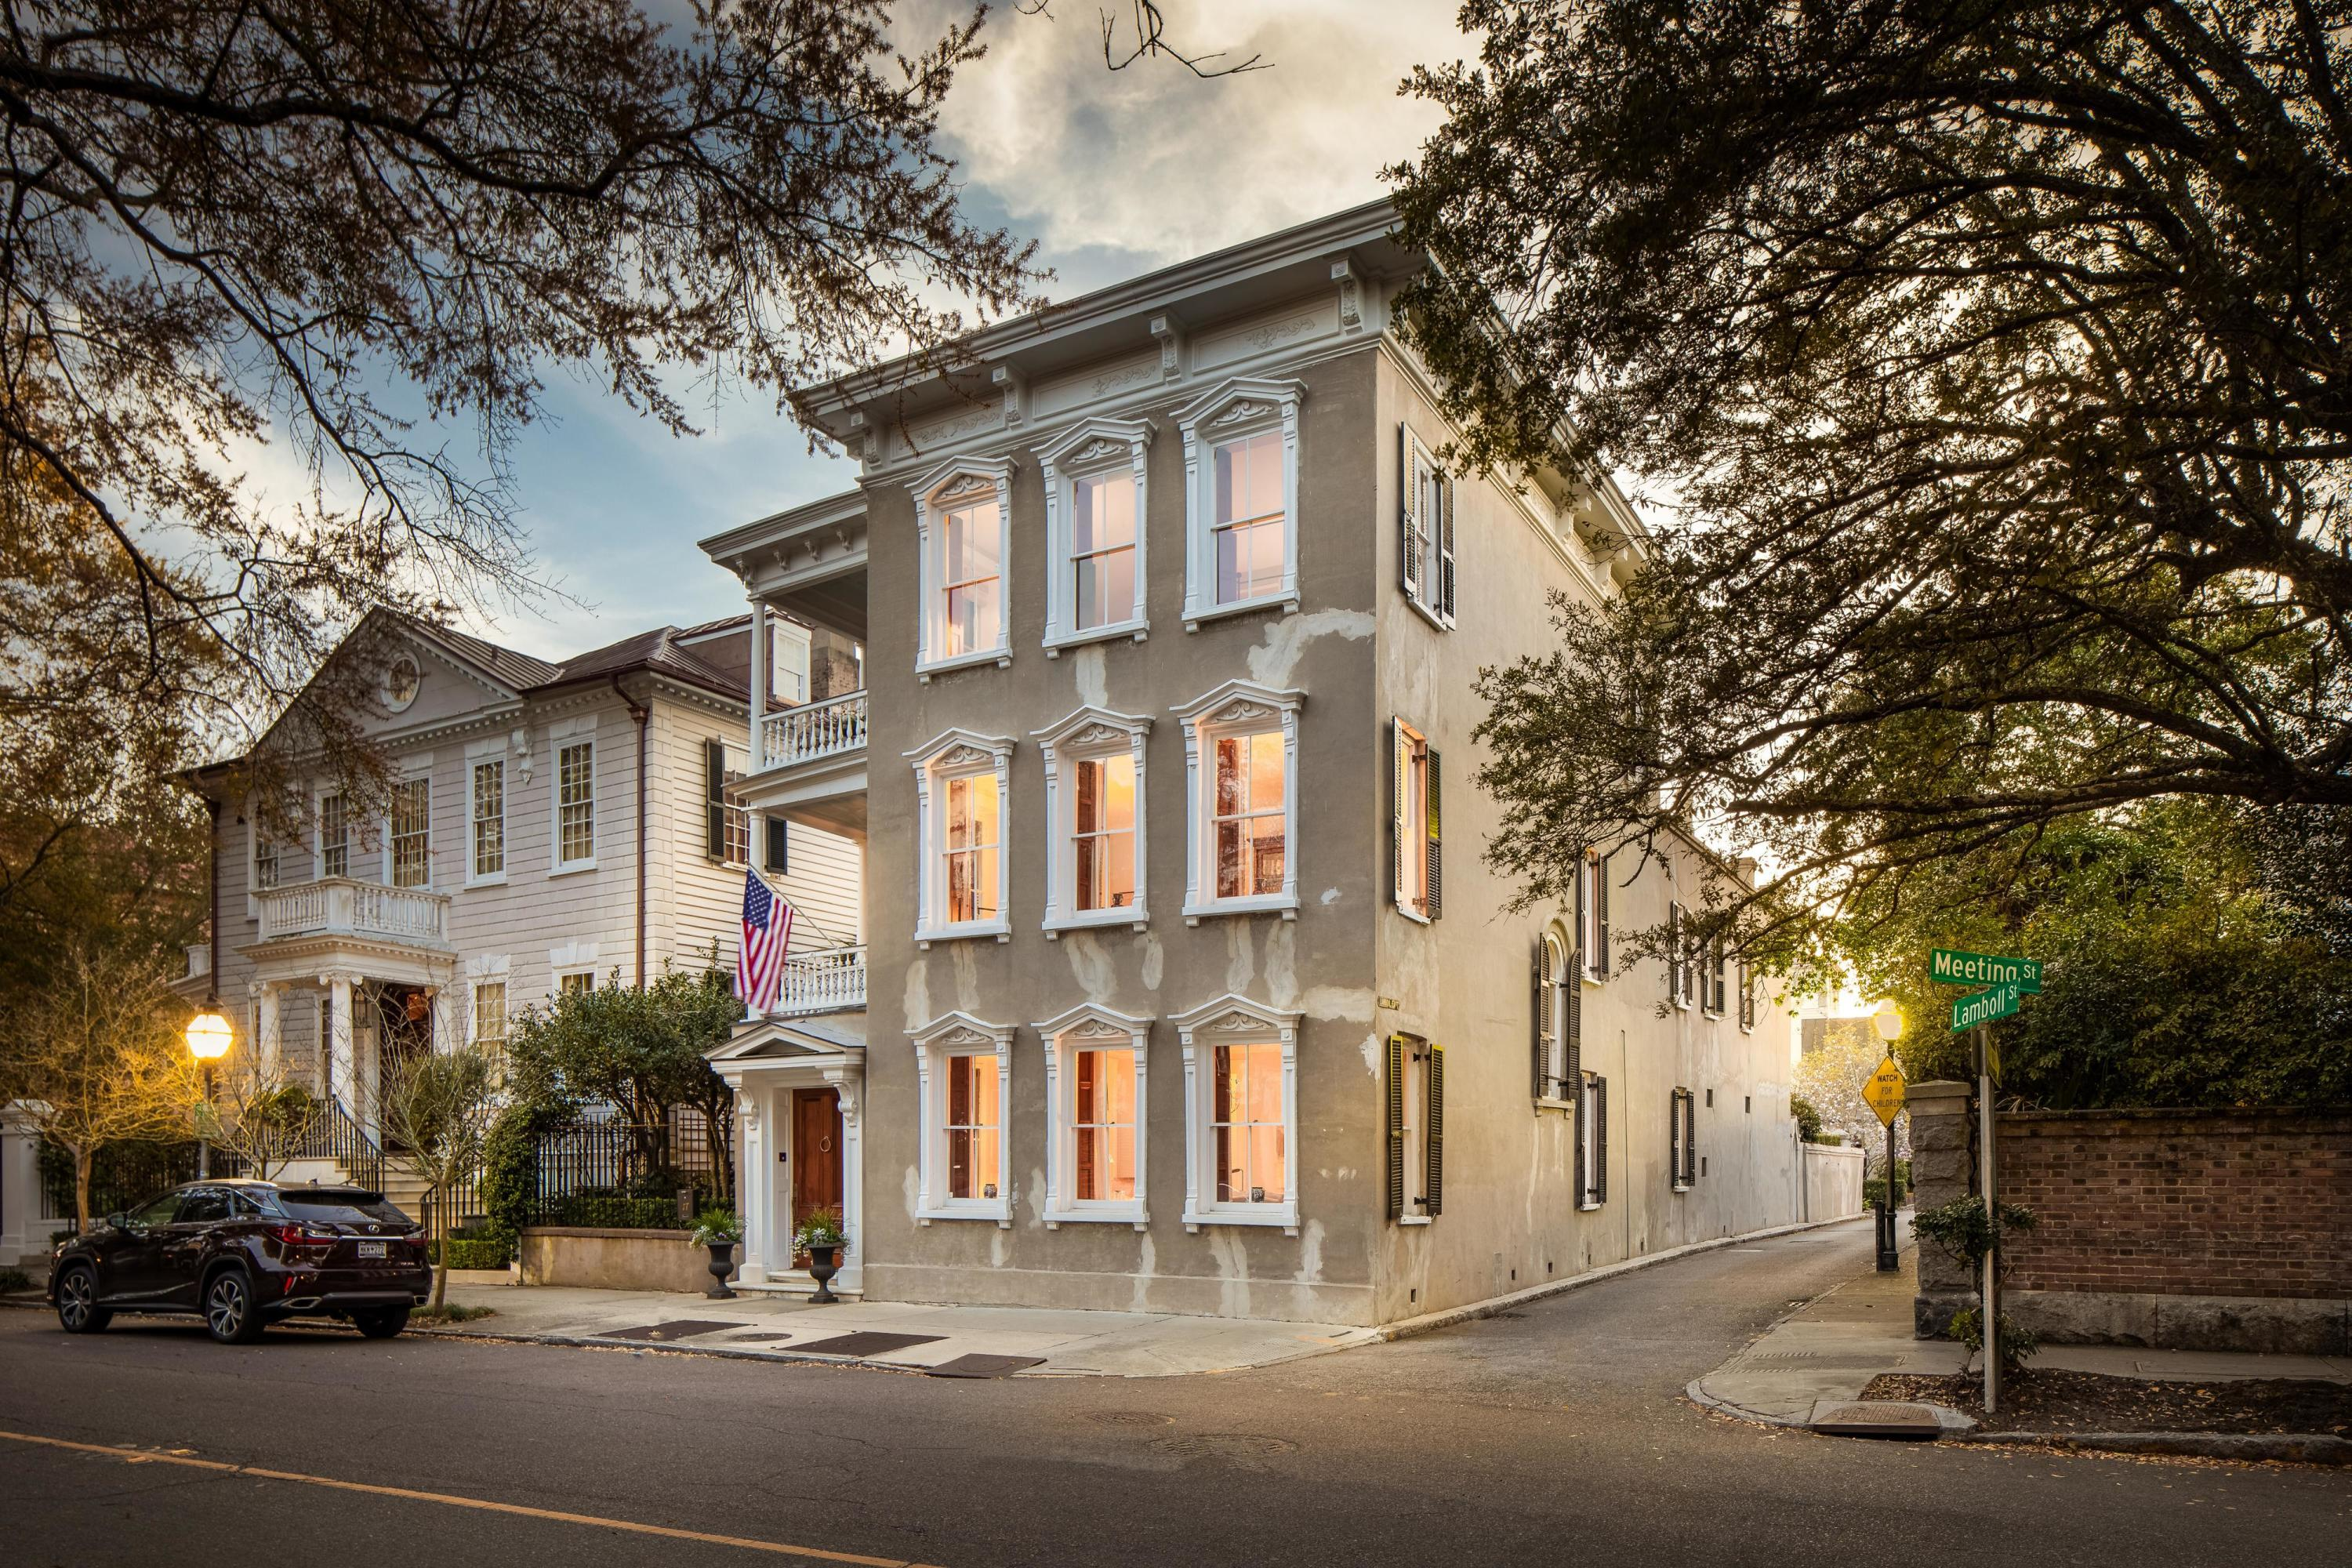 Photo of 17 Meeting St, Charleston, SC 29401